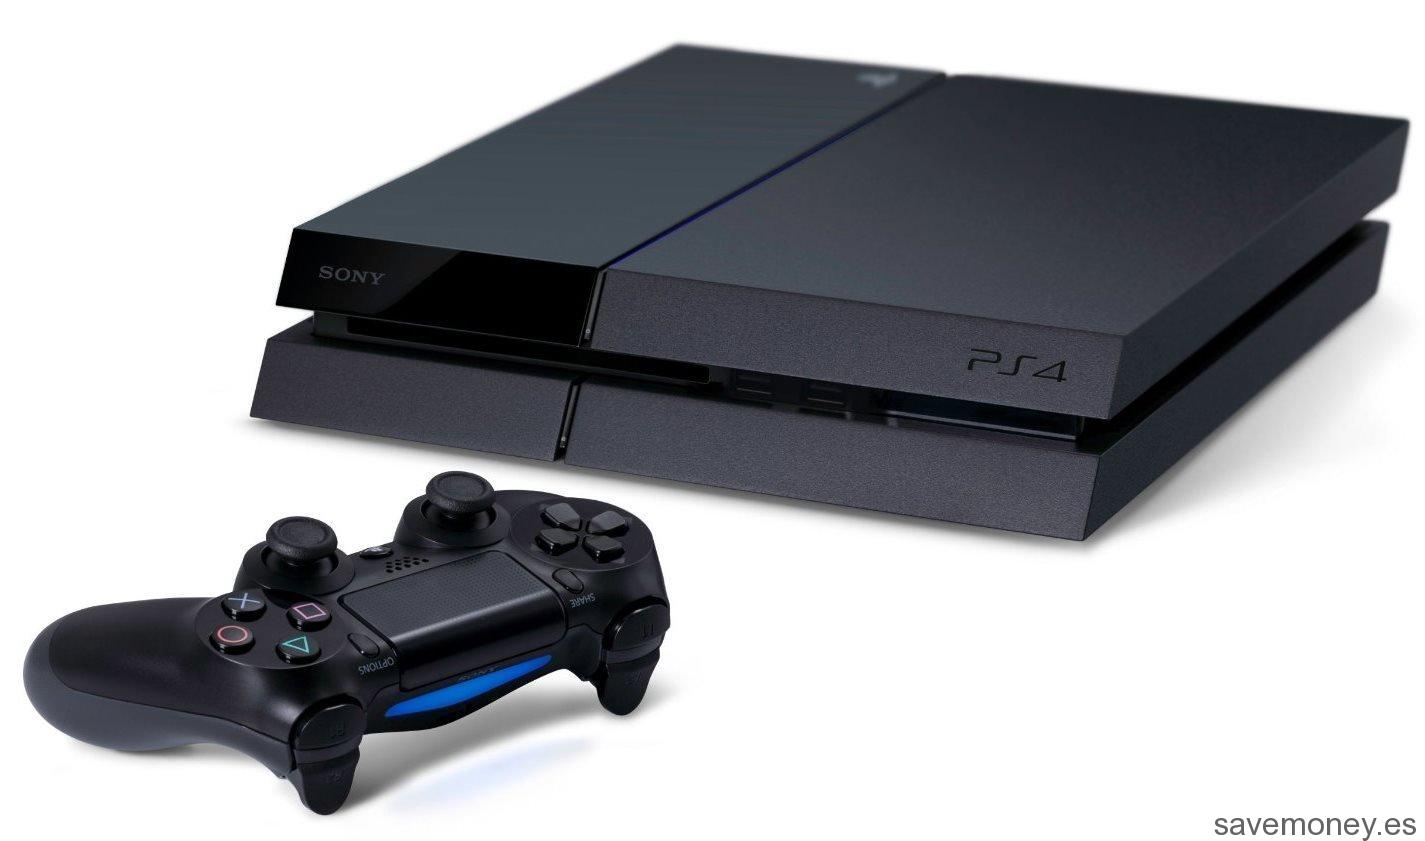 Consola PlayStation 4 de 500 GB de Sony